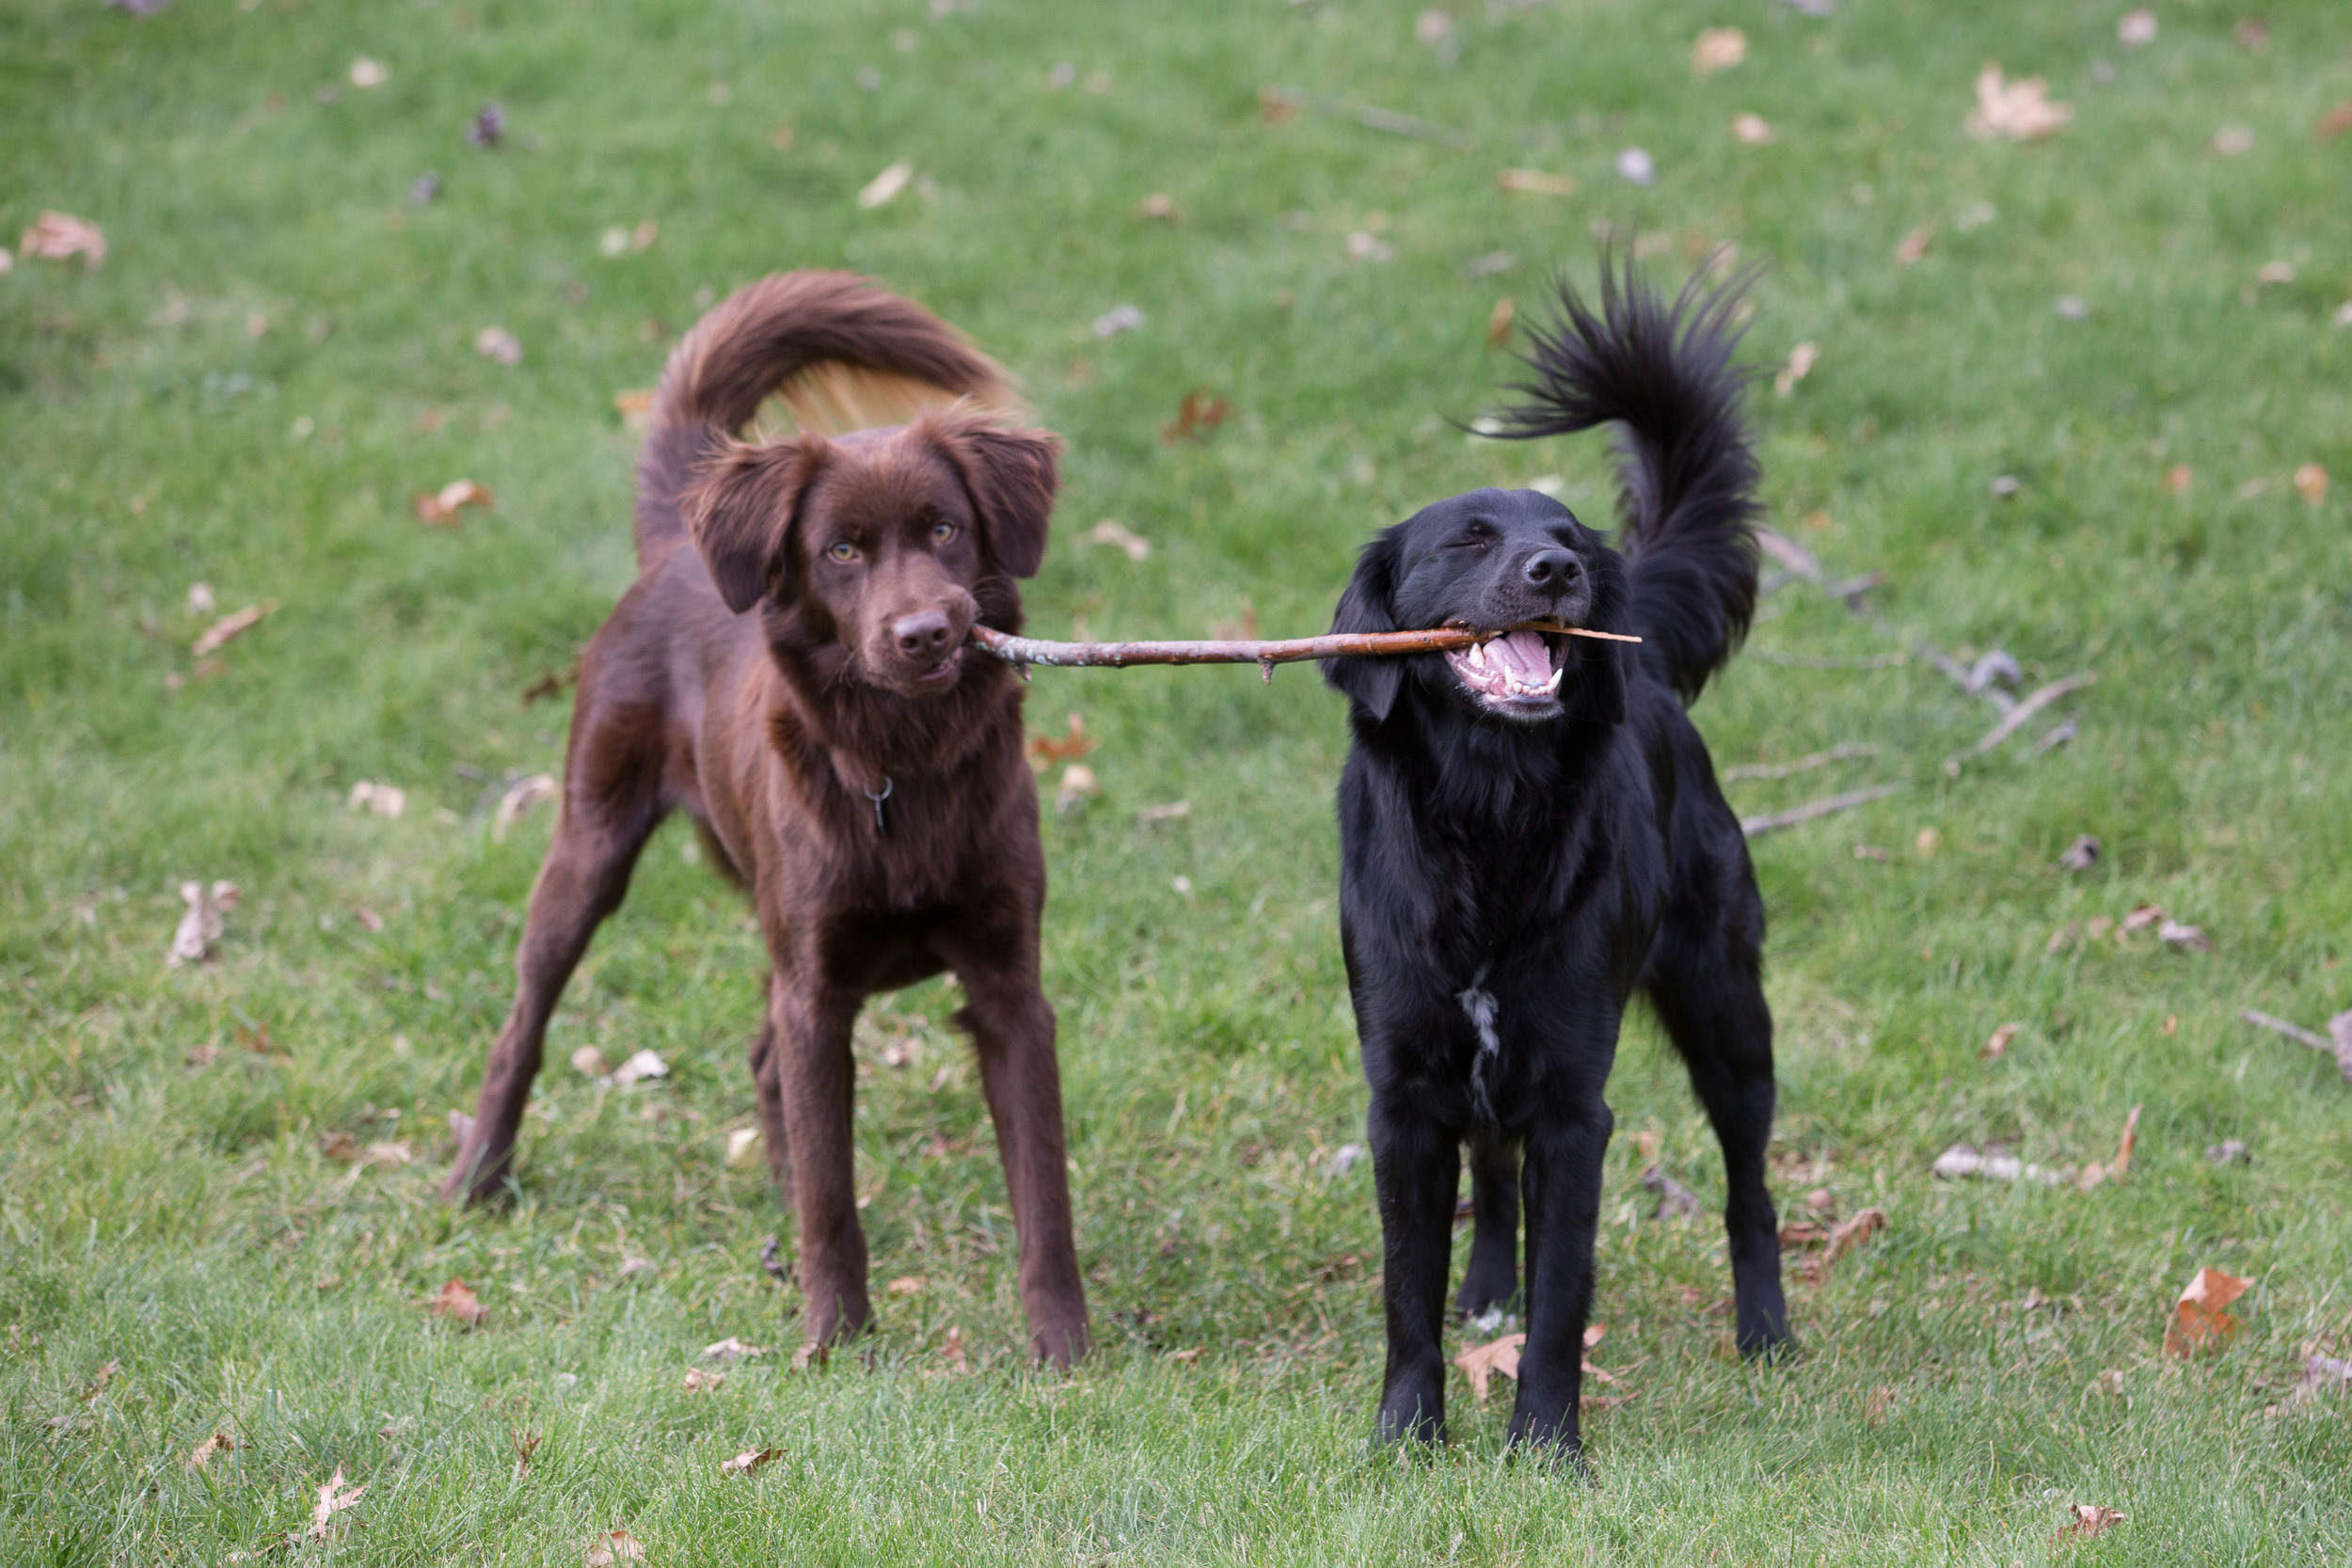 Lady (right) and her foster brother Acorn (left) enjoying a stick together.